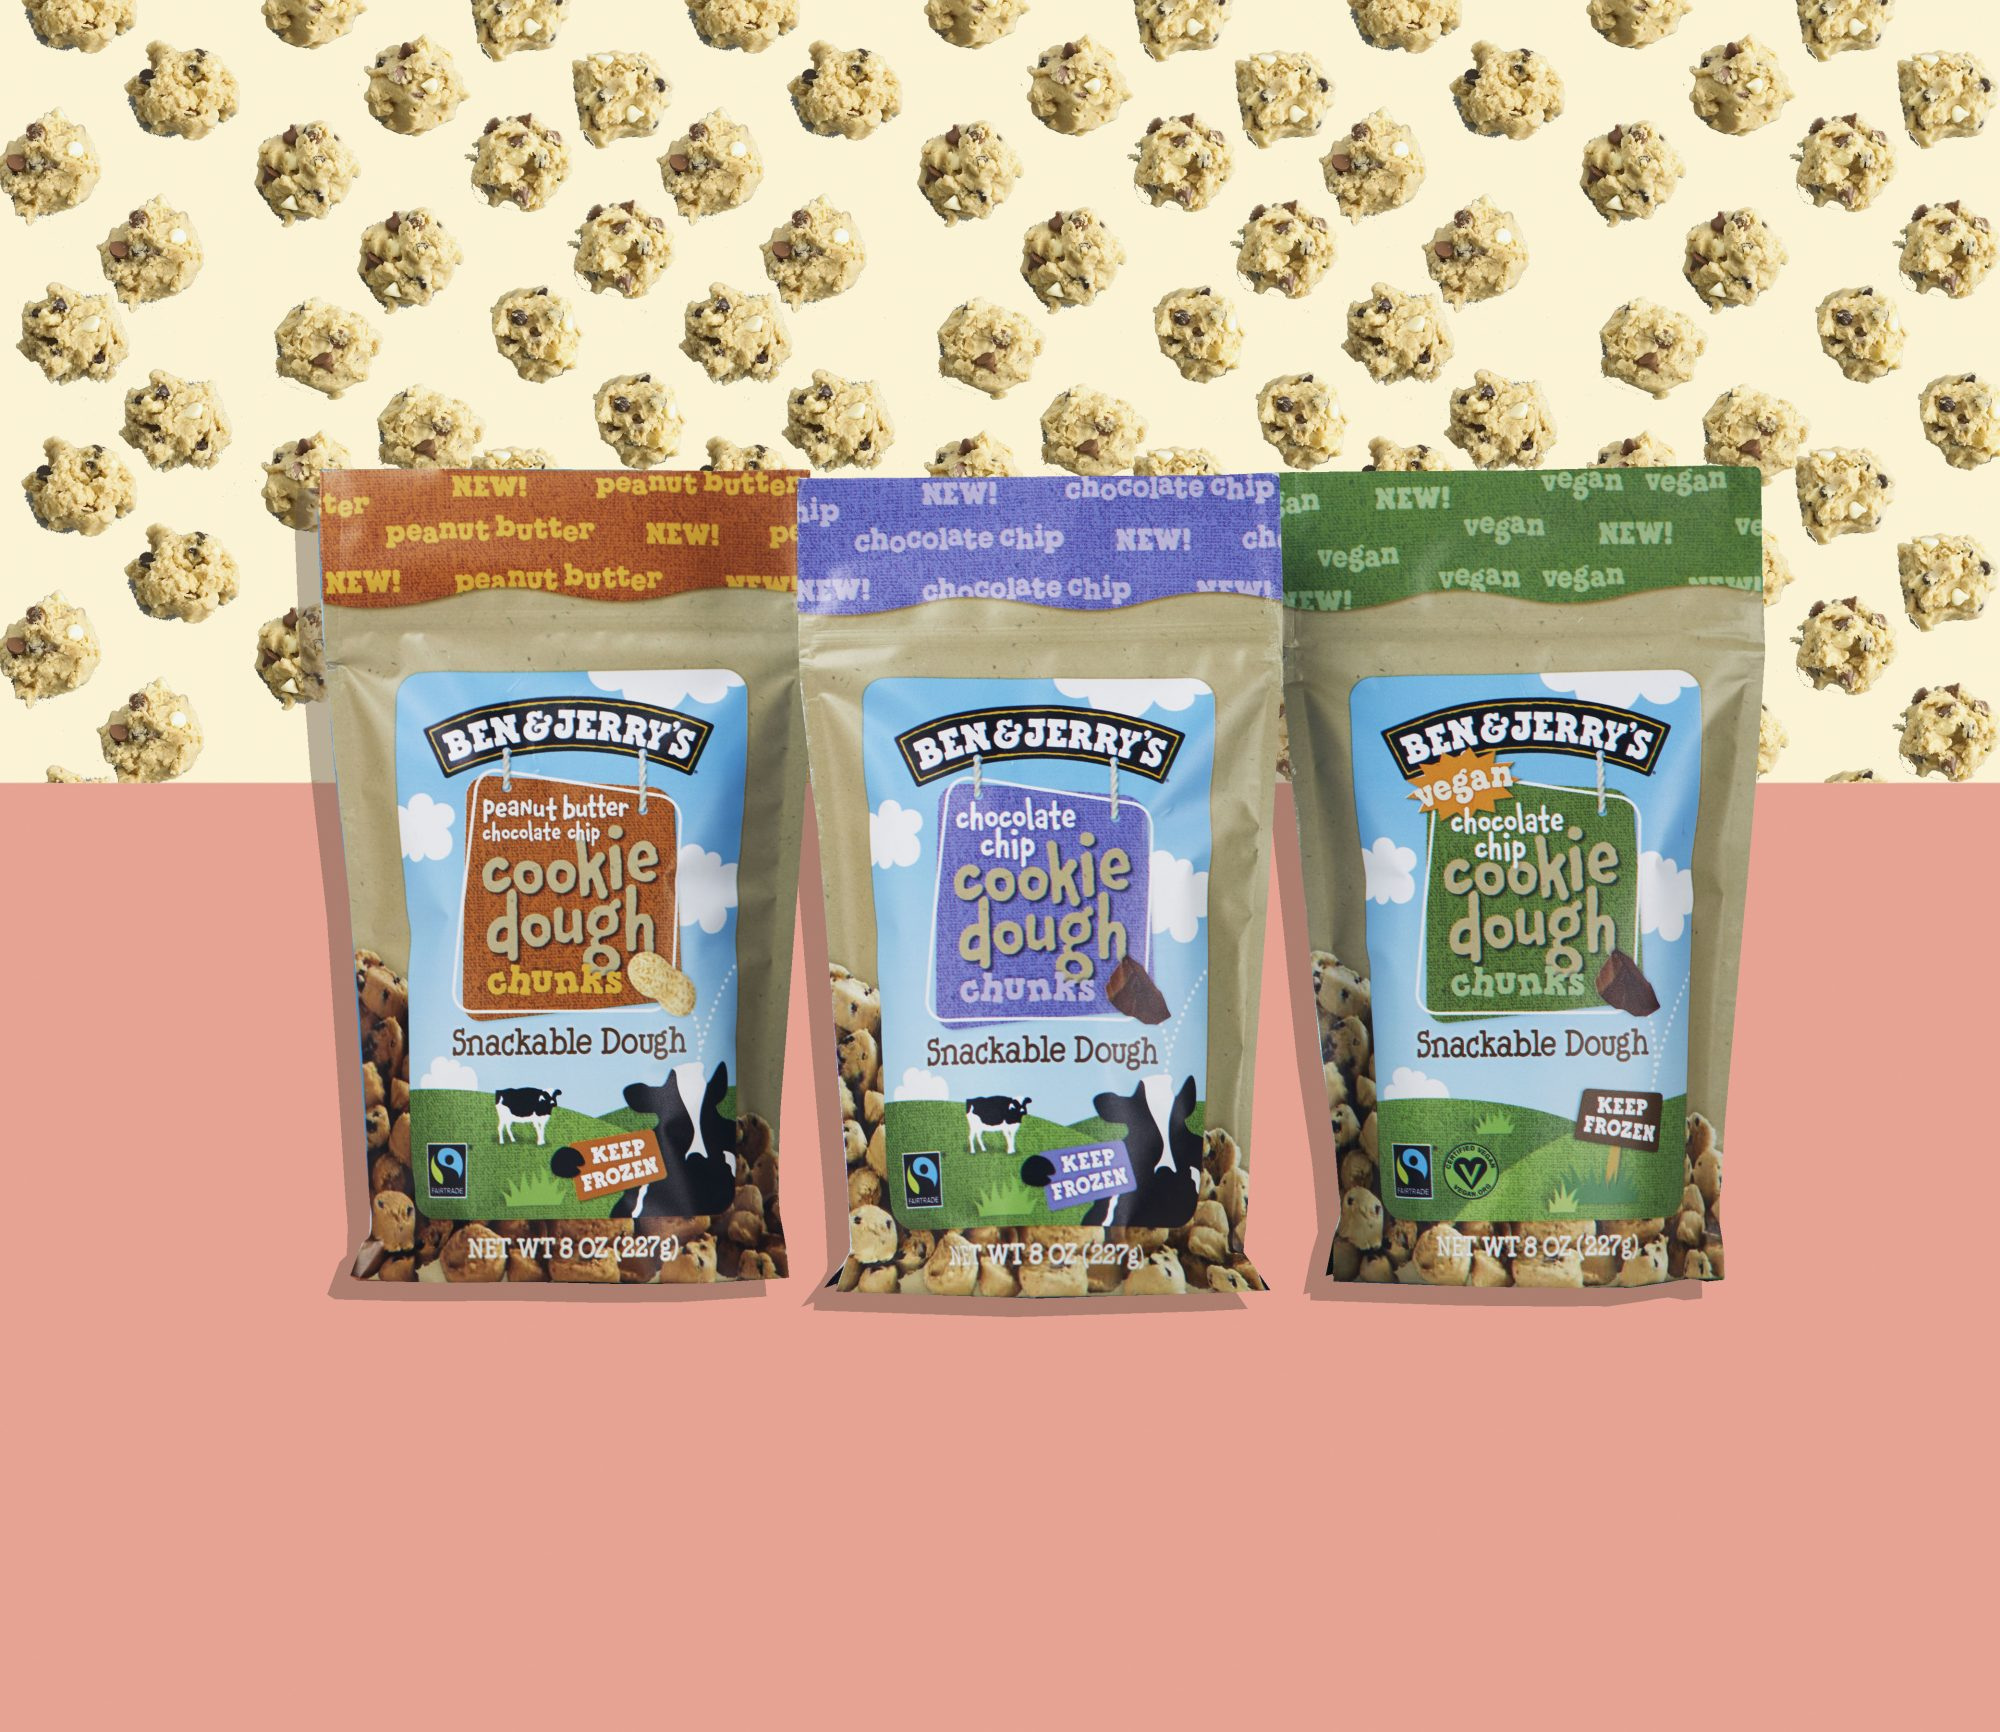 Ben & Jerry's New Snackable Cookie Dough Is About to Be Your Sweet-Tooth Obsession